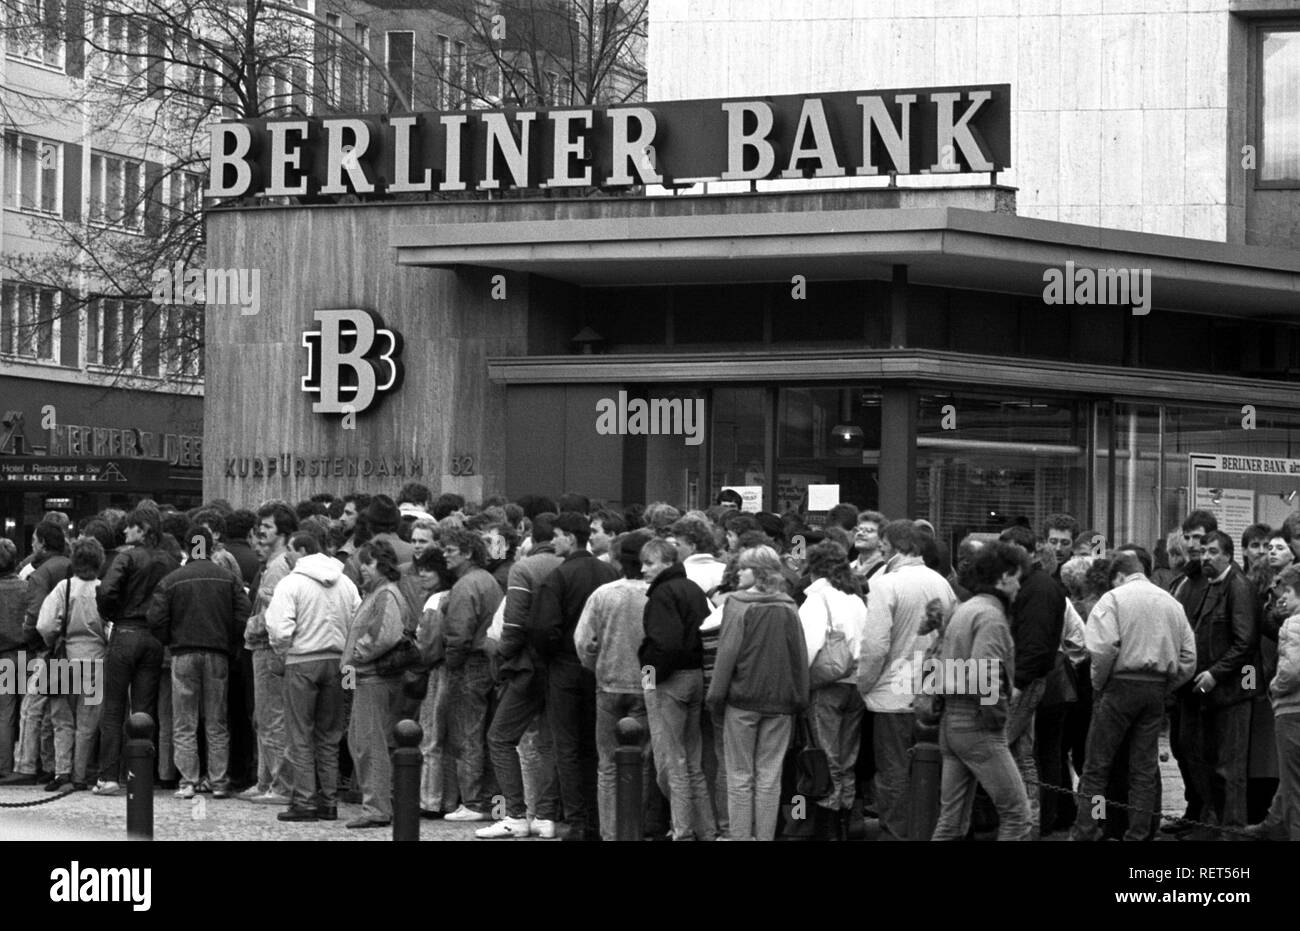 Fall of the Berlin Wall, people standing in line for the 100 DM Begruessungsgeld, welcome money, Berlin - Stock Image